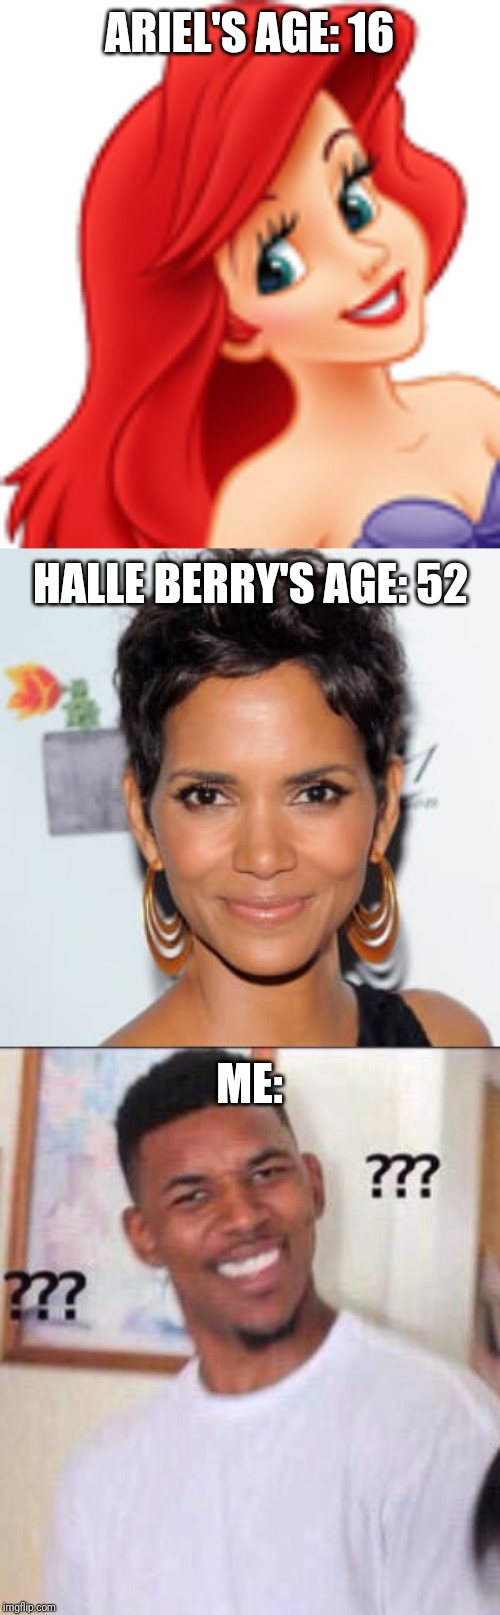 They cast... HALLE BERRY... As TEEN mermaid princess Ariel. What???? | ARIEL'S AGE: 16 ME: HALLE BERRY'S AGE: 52 | image tagged in black guy confused,memes,little mermaid,ariel,halle berry,disney | made w/ Imgflip meme maker